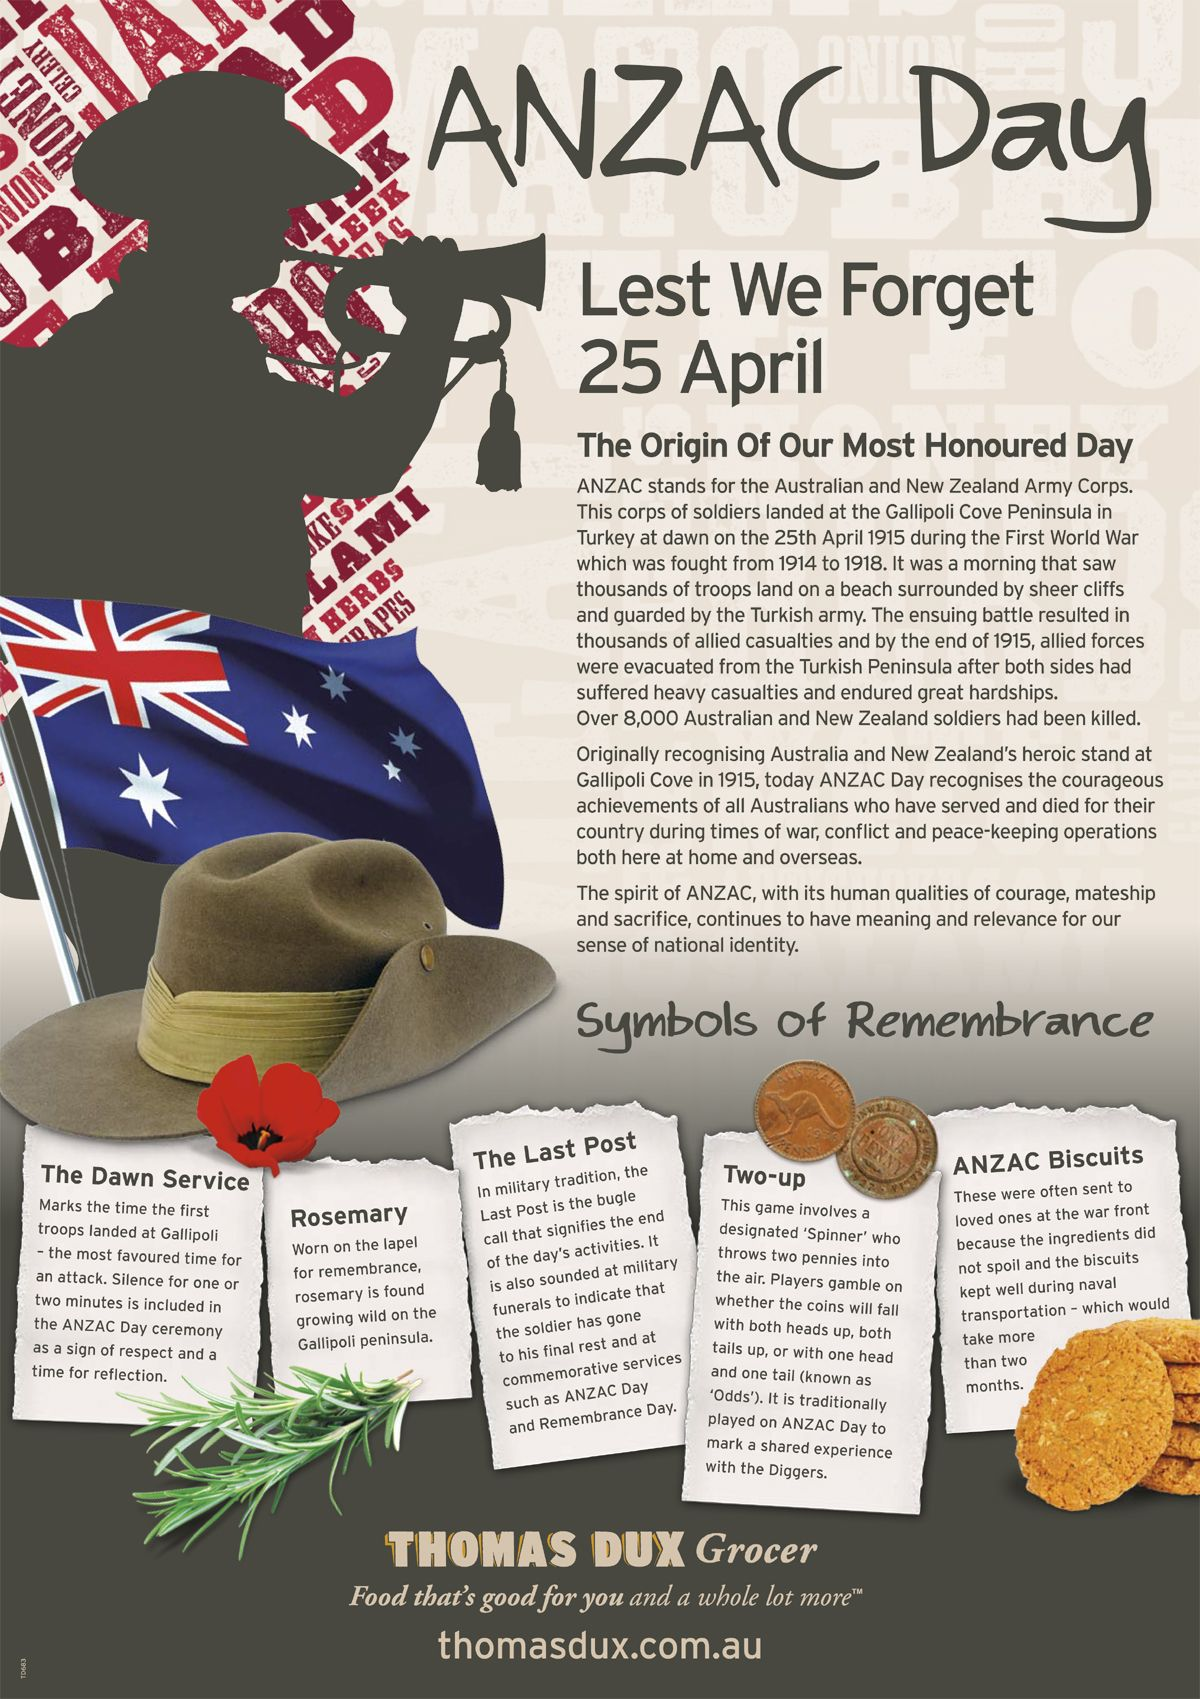 whats open on anzac day - 736×1042